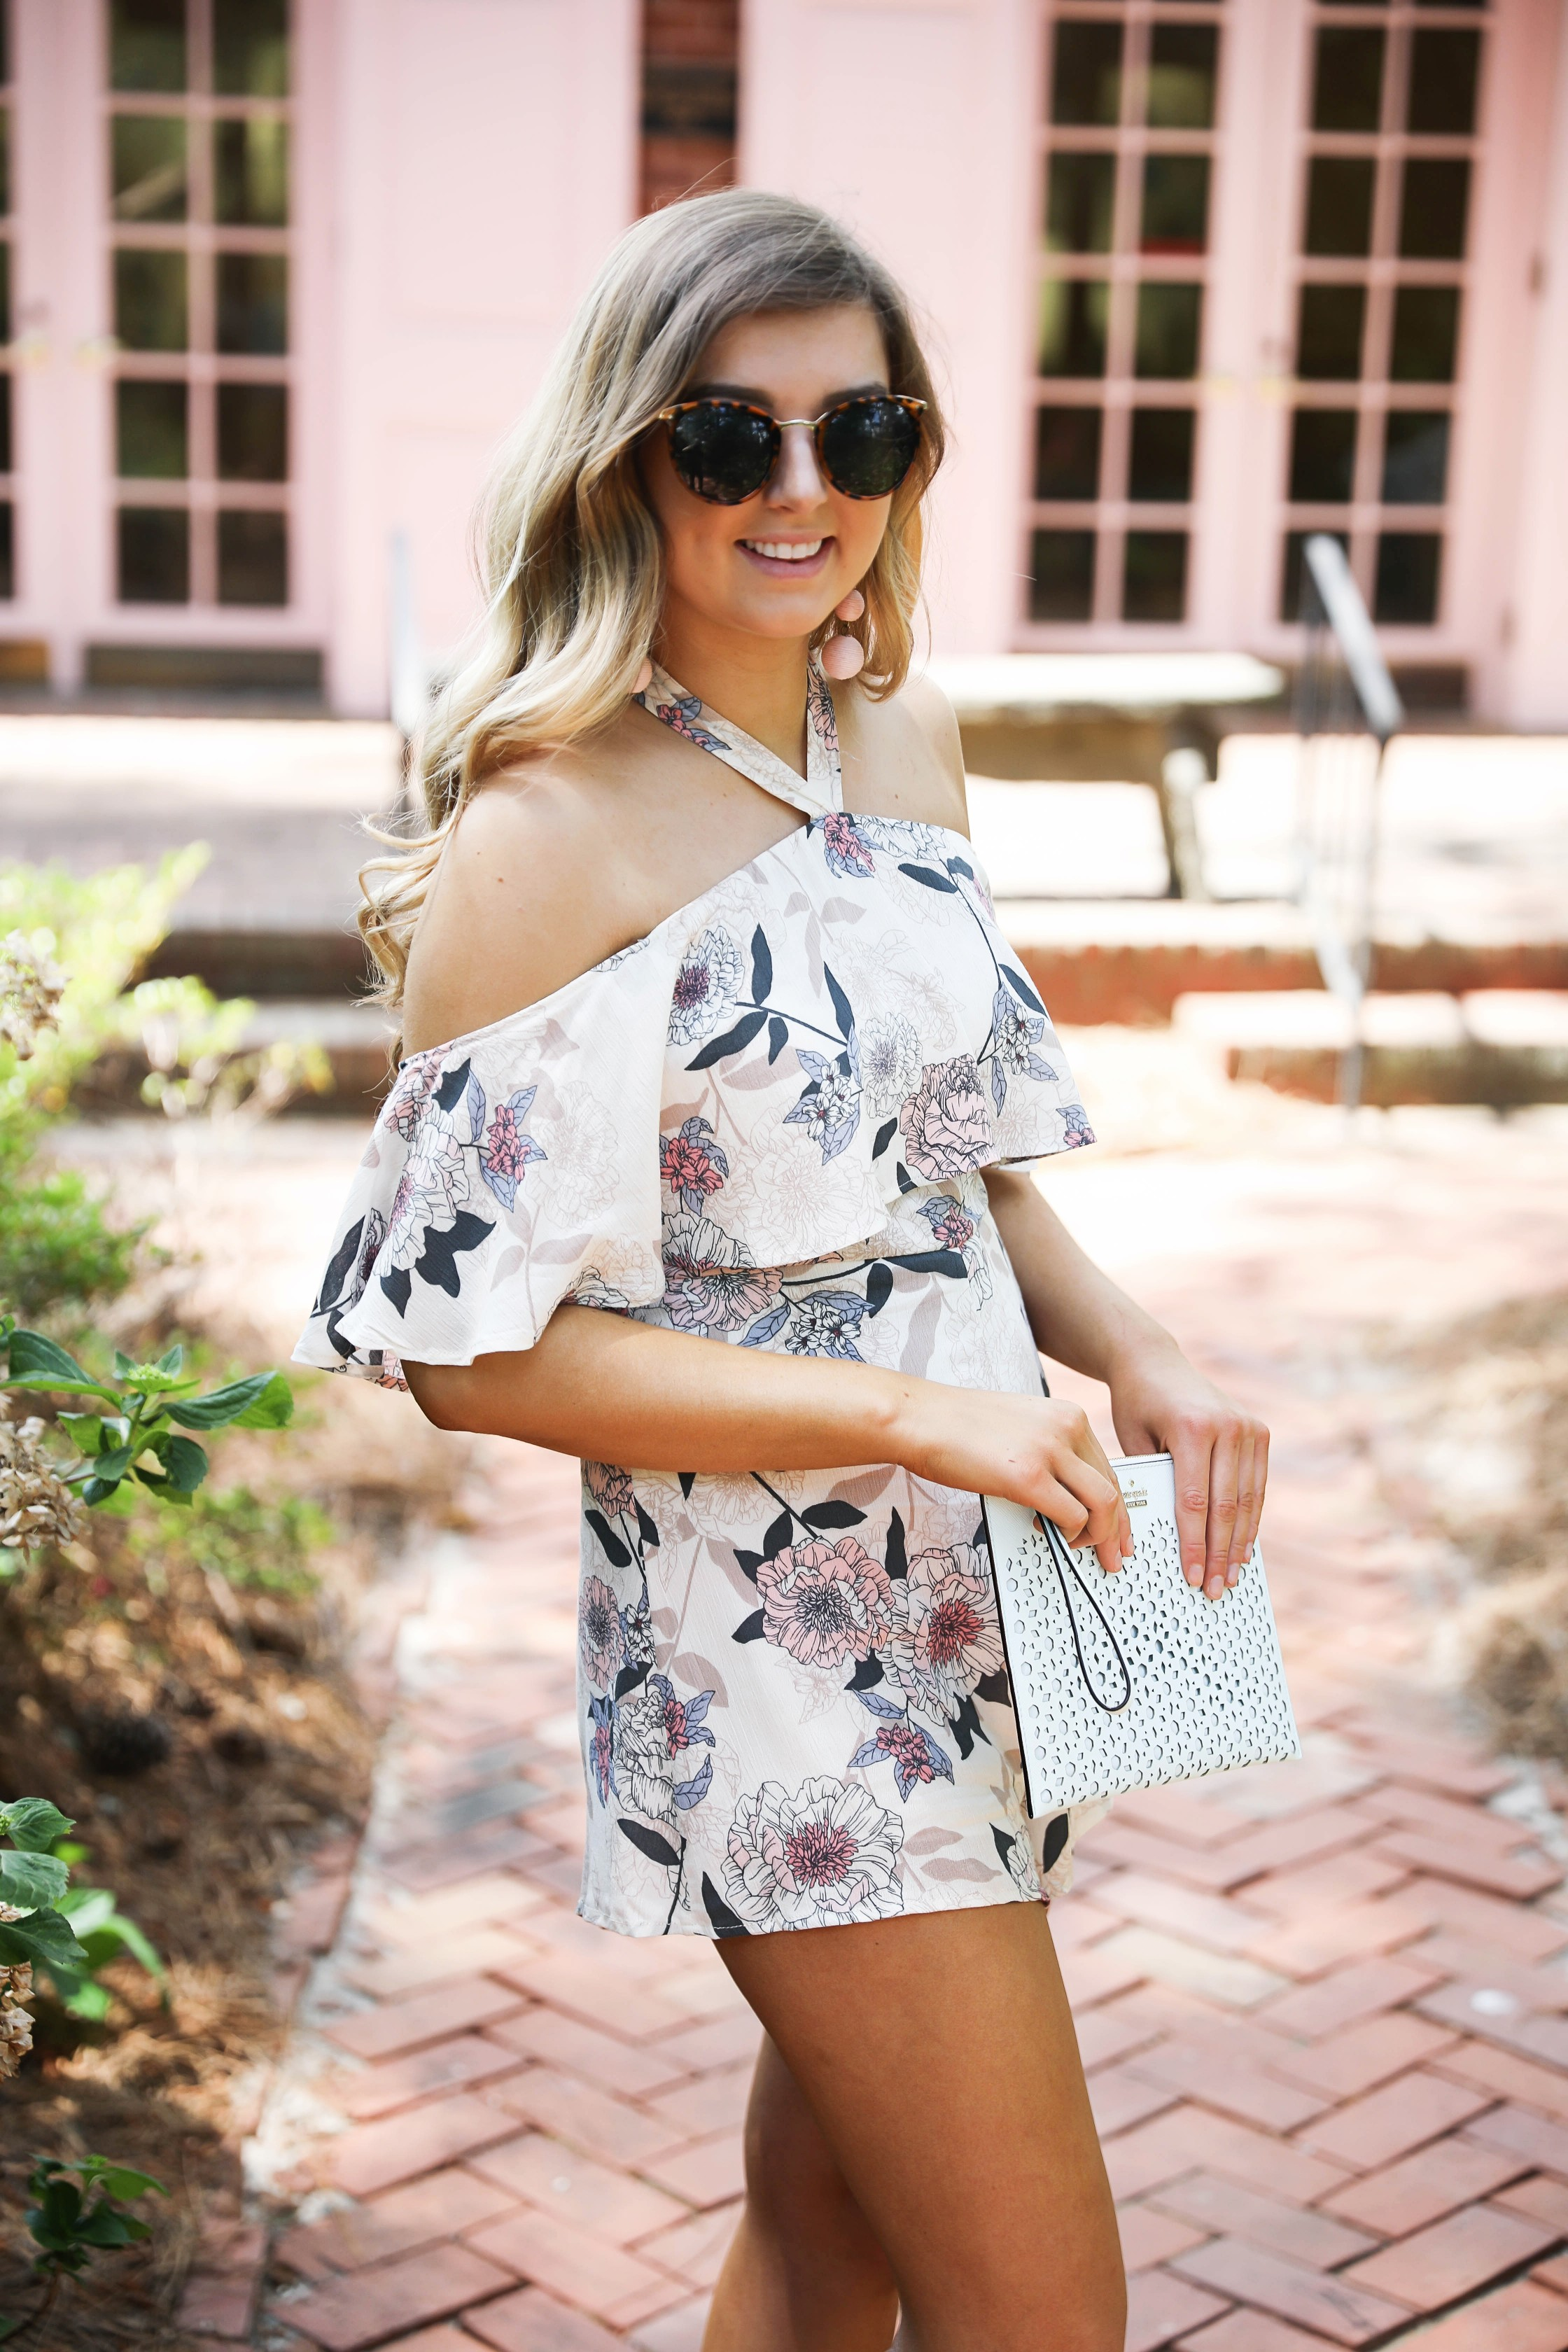 Garden romper. The cutest off the shoulder tied romper for spring and summer outfit ideas. by Lauren Lindmark on daily dose of charm dailydoseofcharm.com